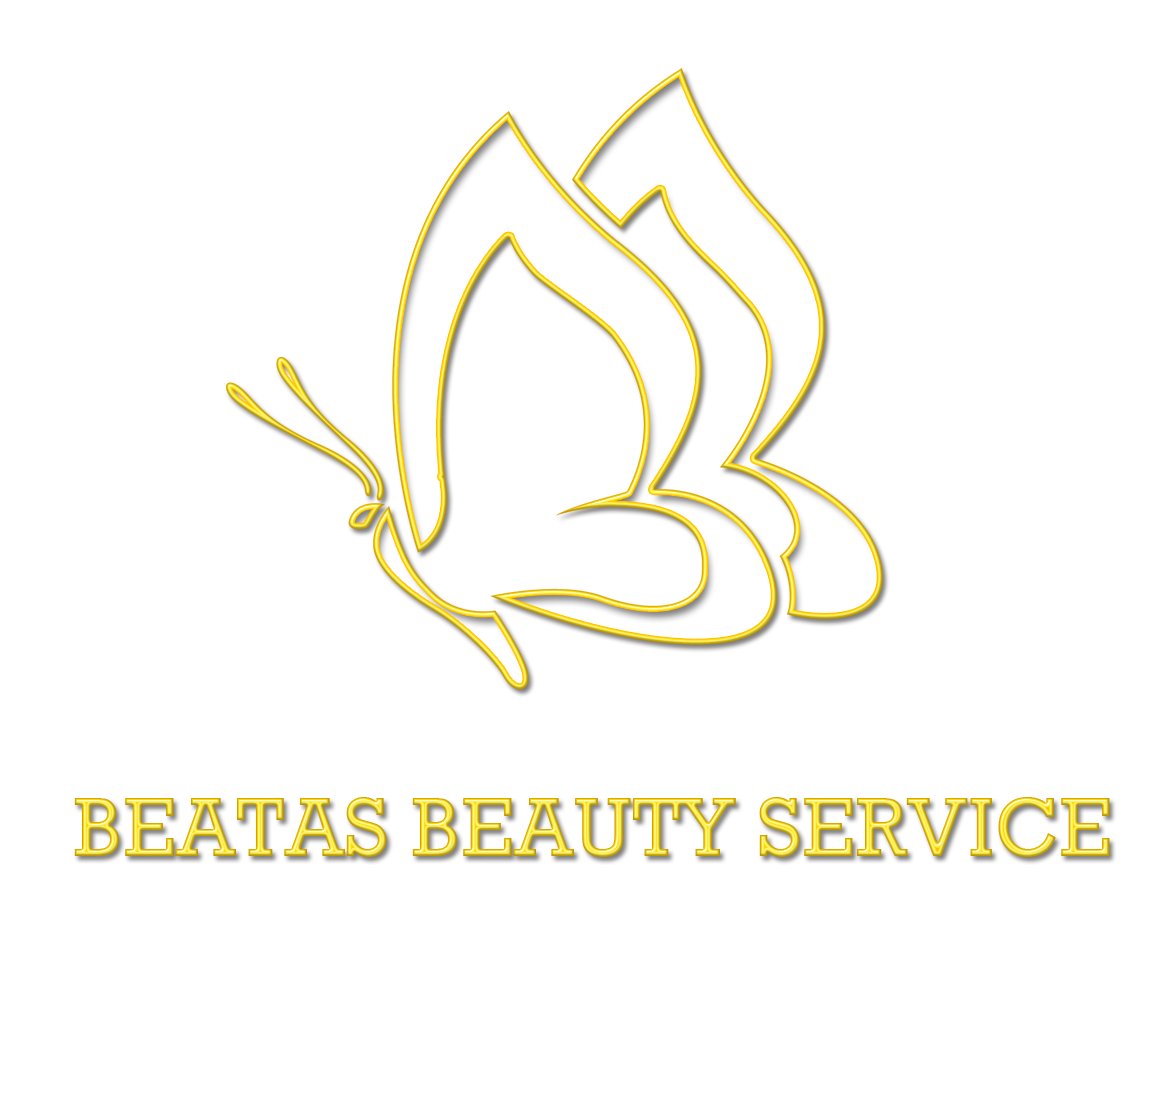 Beatas-Beauty-Service